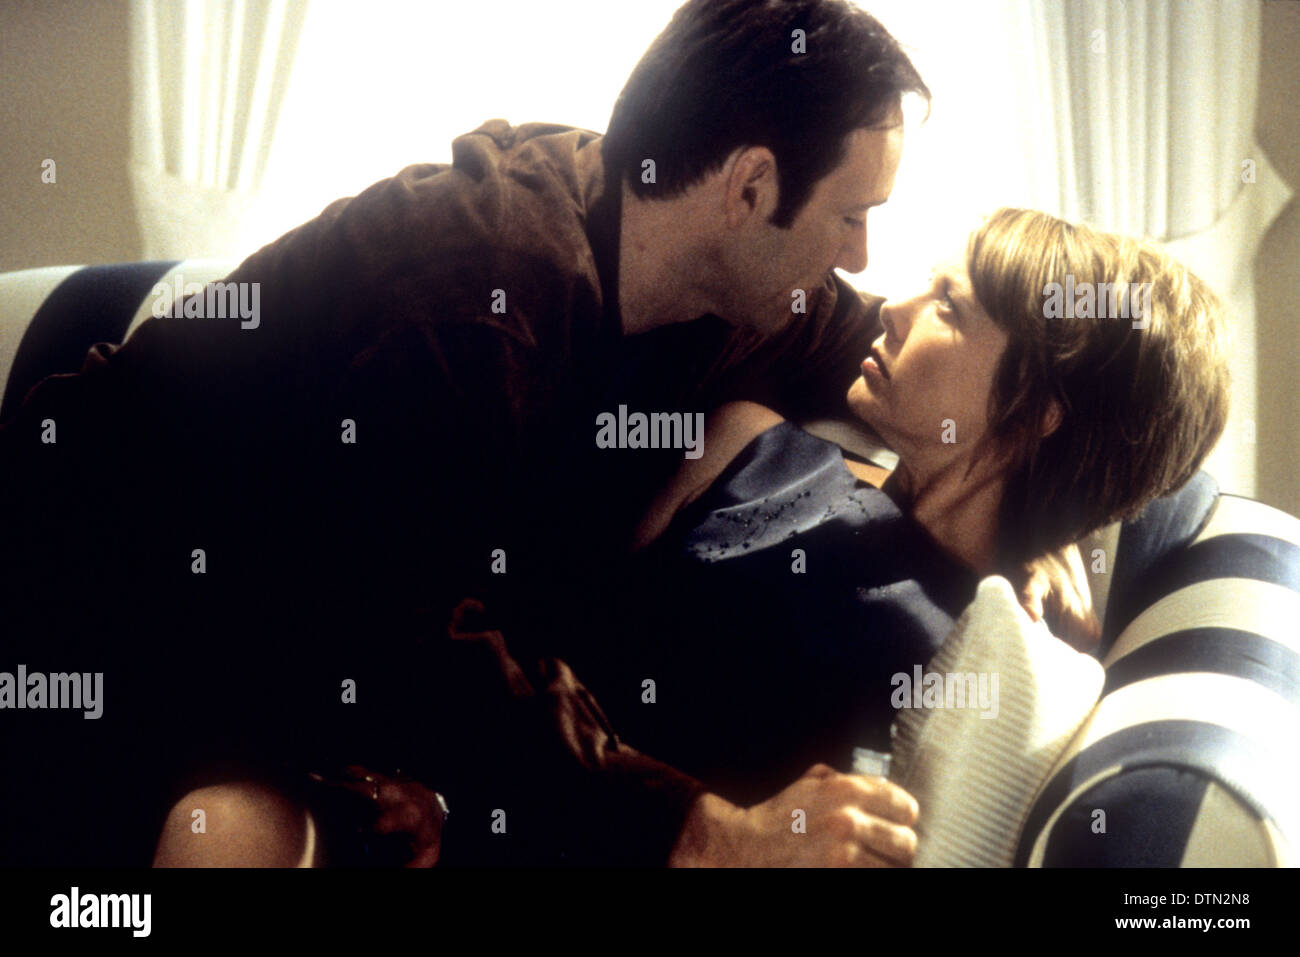 AMERICAN BEAUTY 1999 DreamWorks SKG film with Annette Bening and Kevin Spacey - Stock Image